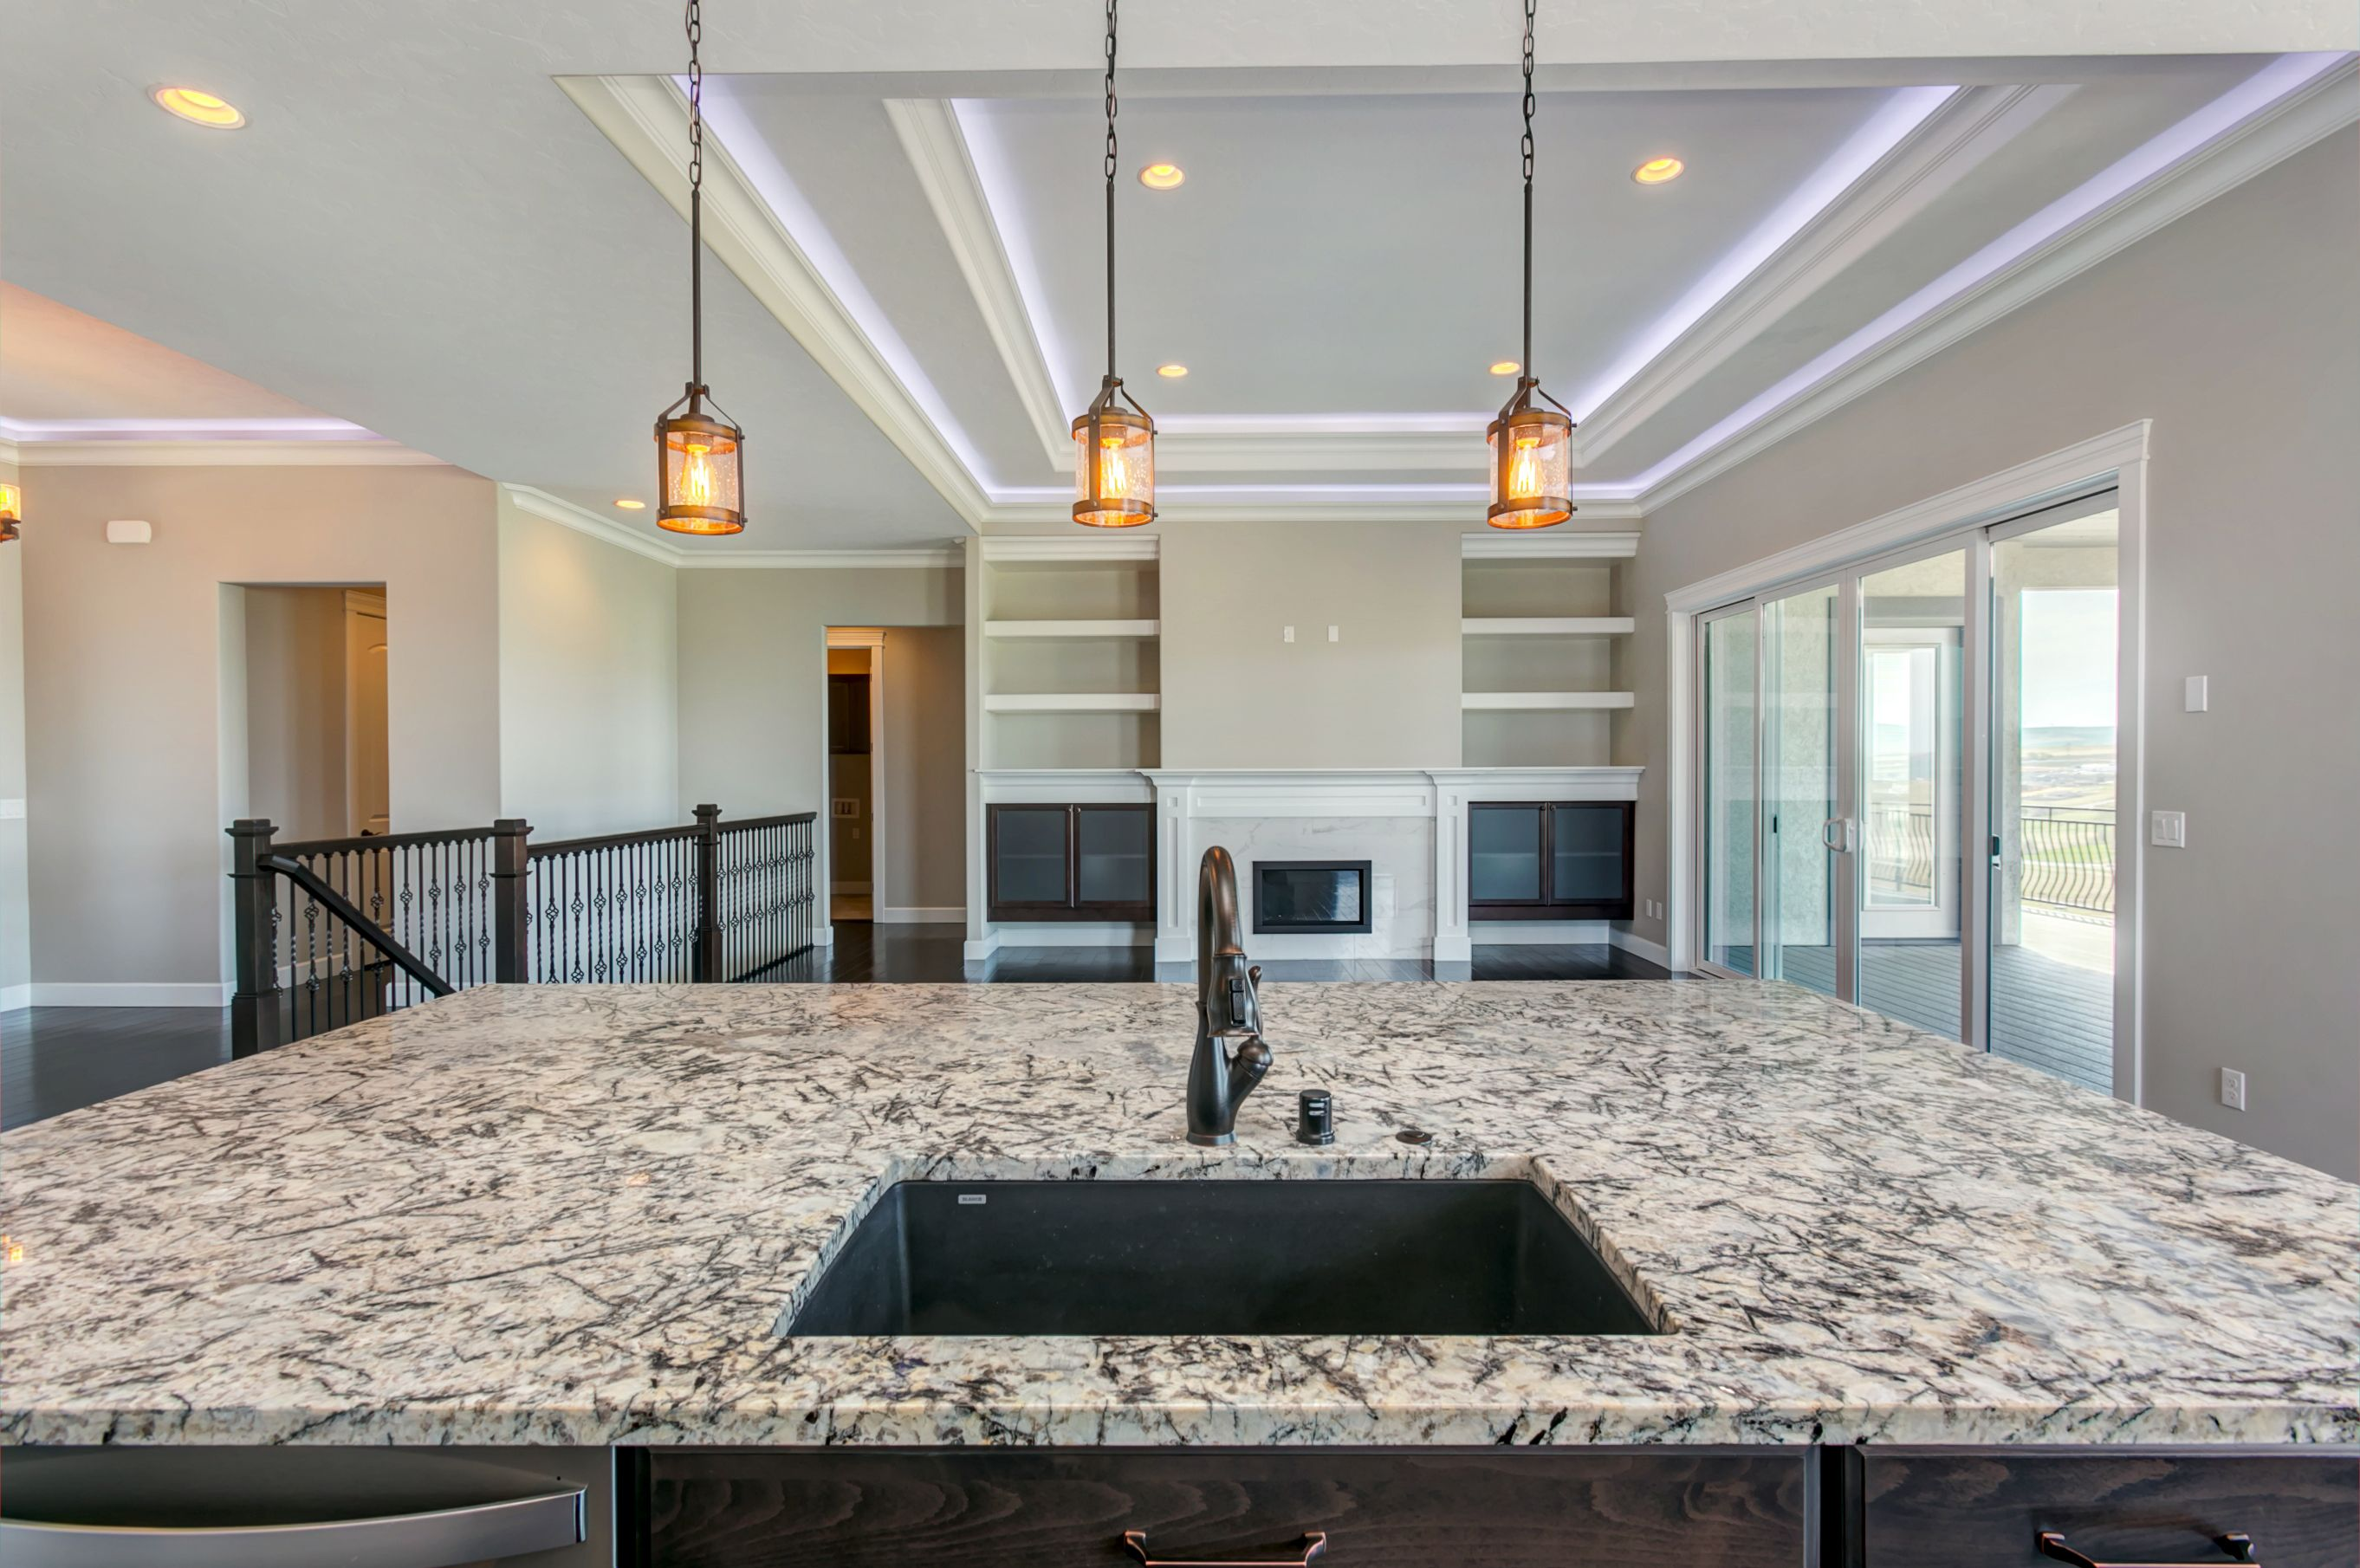 Ice Pearl Granite Pairs Well With Oil Rubbed Bronze For A